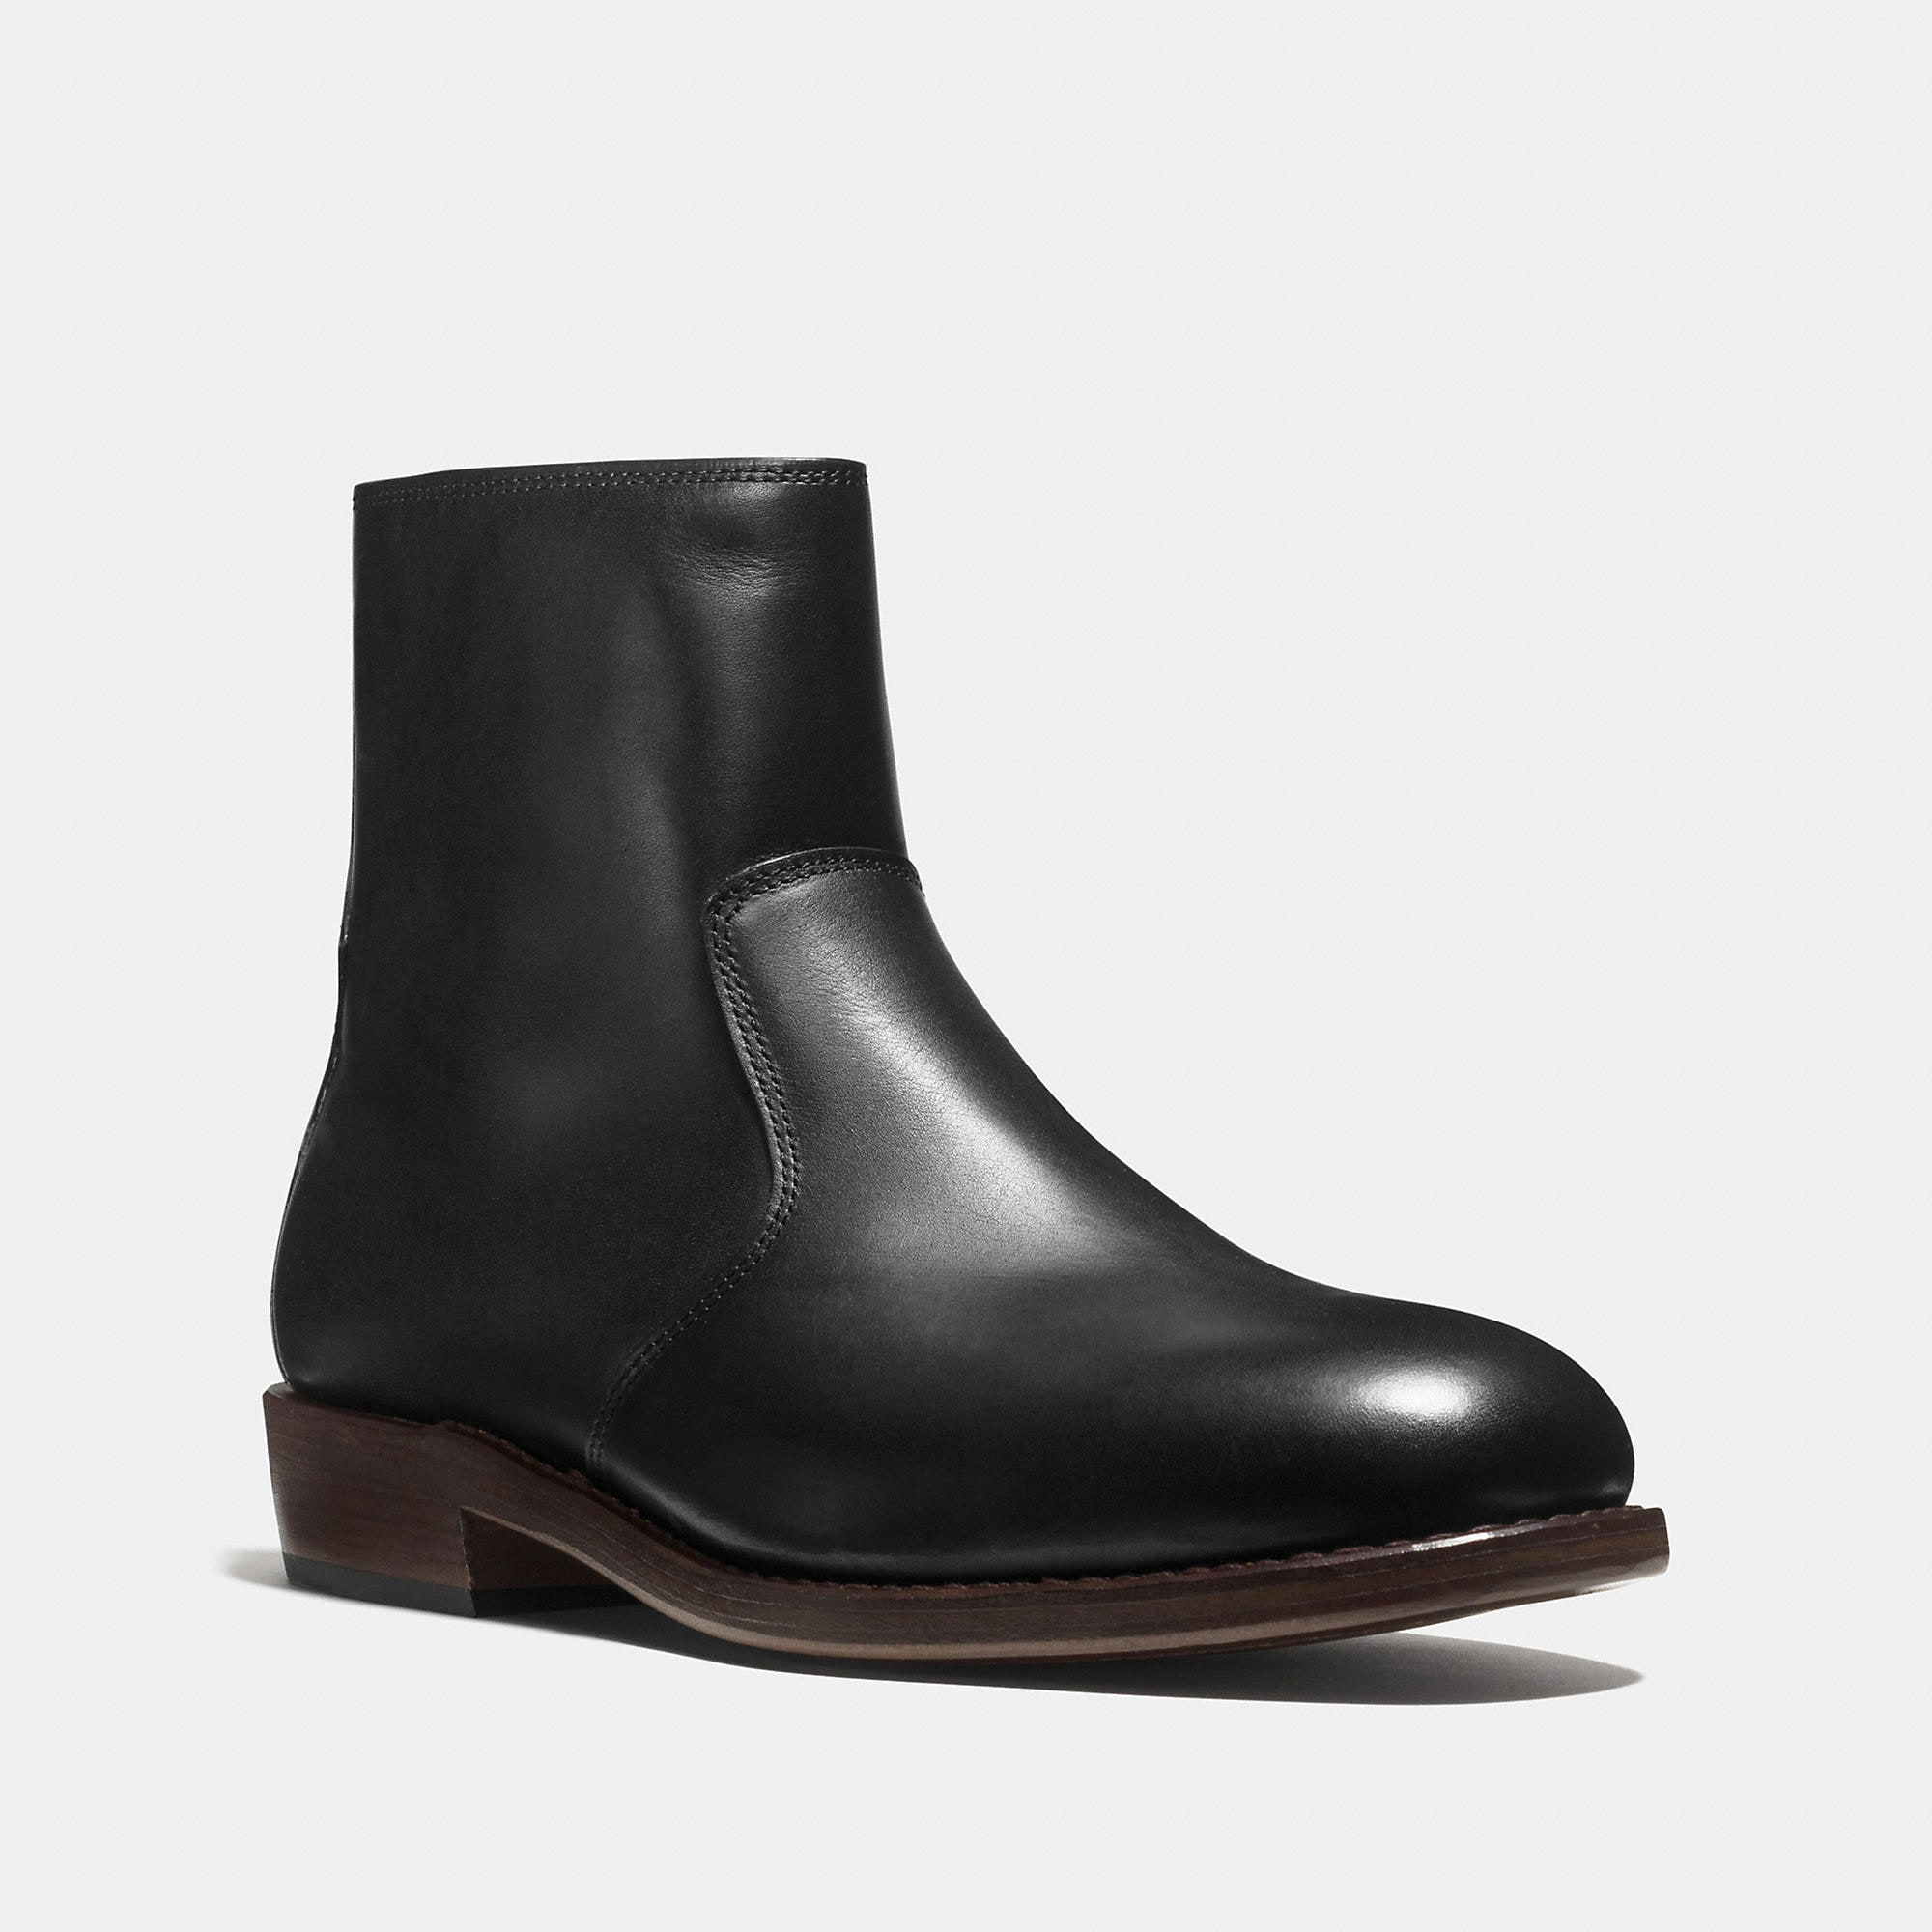 Coach West Leather Zip Boot